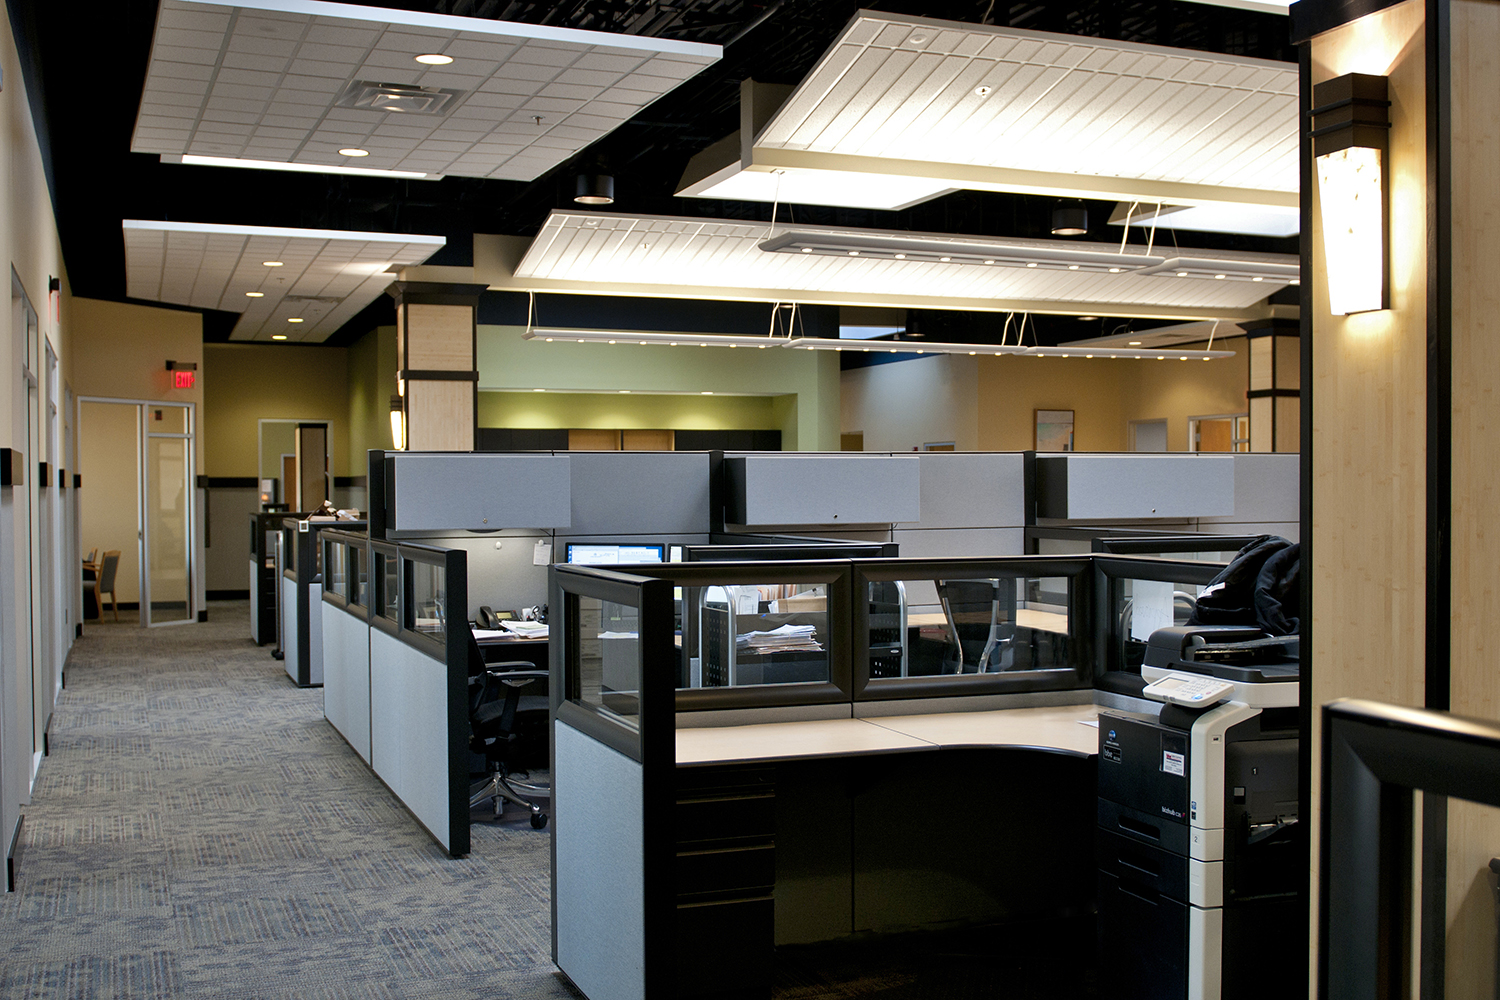 Wedge sconces illuminate a modern office lighting design, shown along the wall of an open cubicle area with an exposed ceiling.